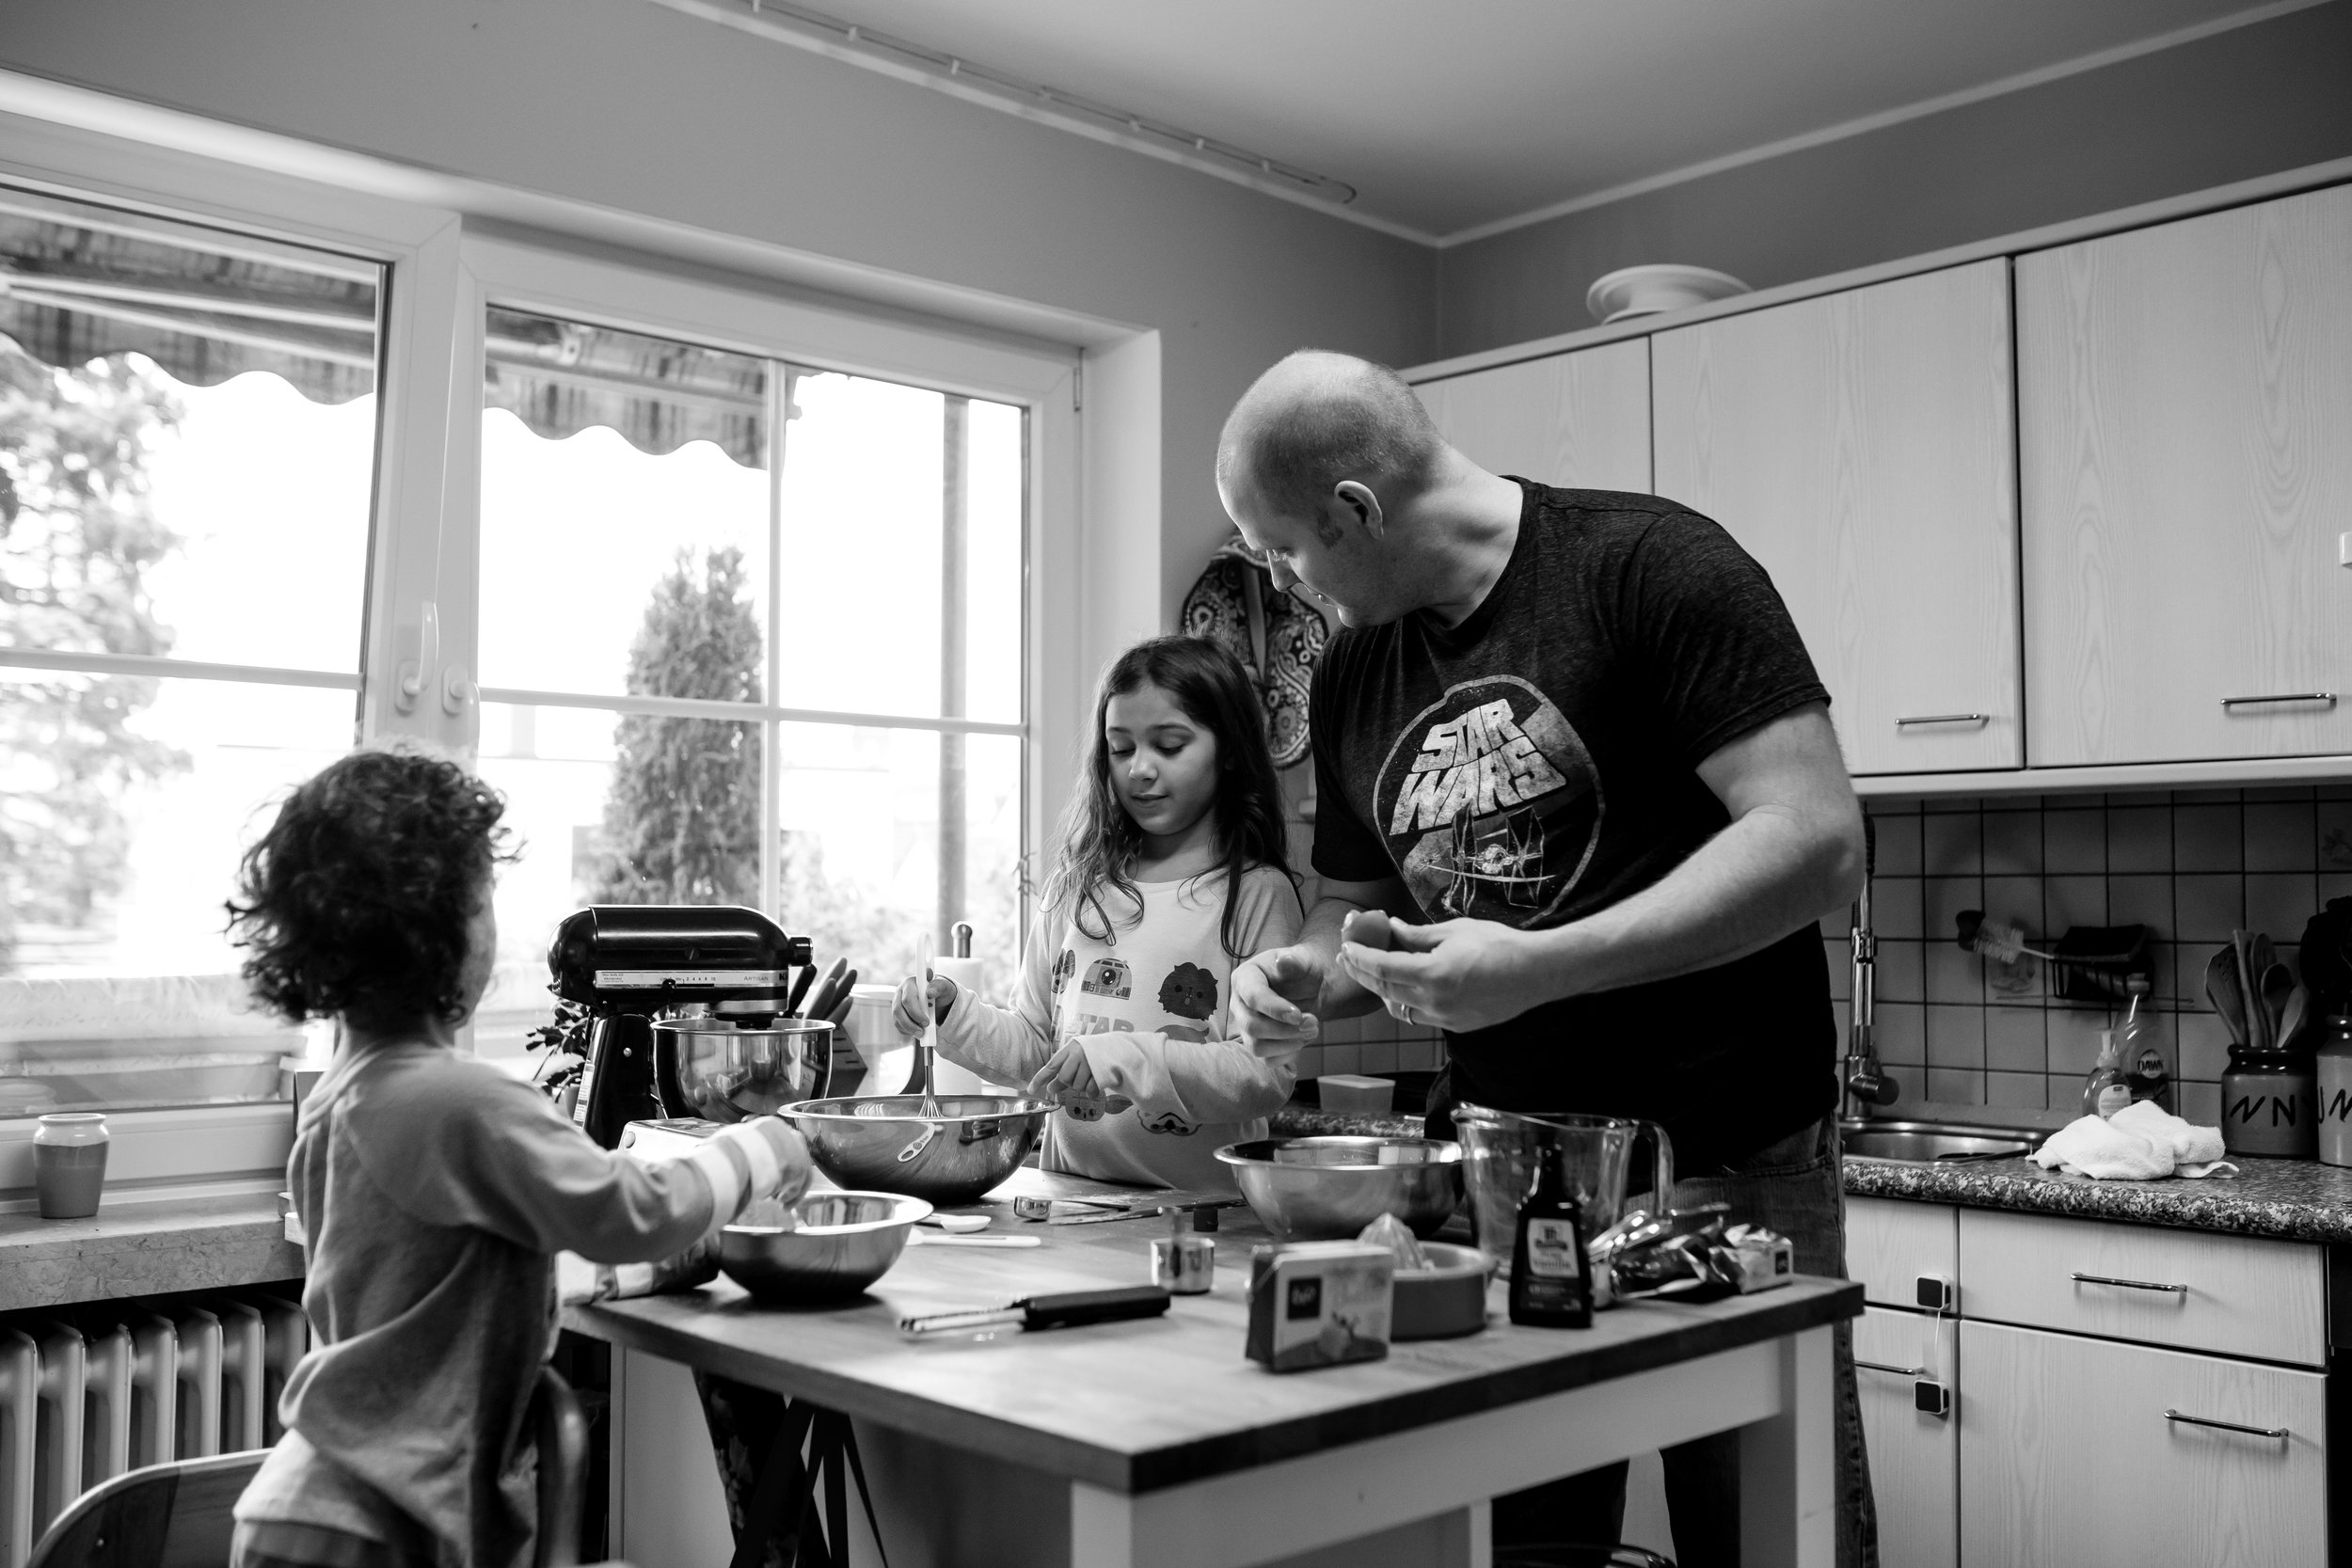 Dad and daughters talk and make pancakes